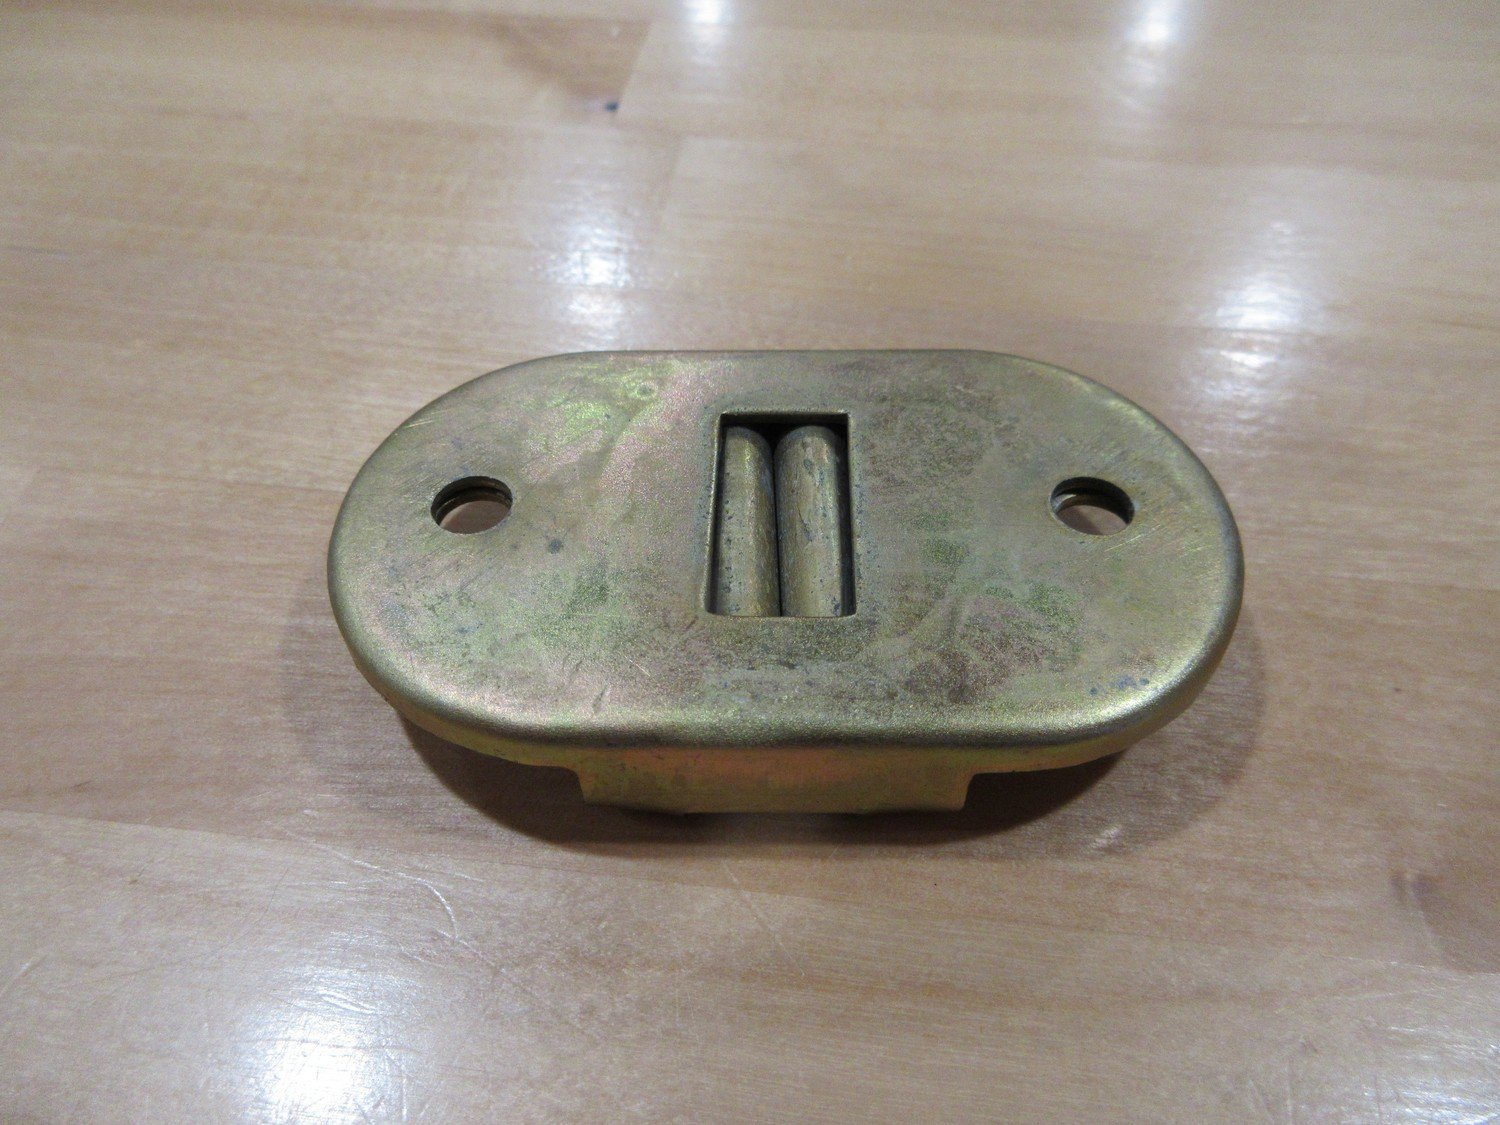 CJ2A CJ3A CJ3B REAR SEAT CATCH LATCH CPR102